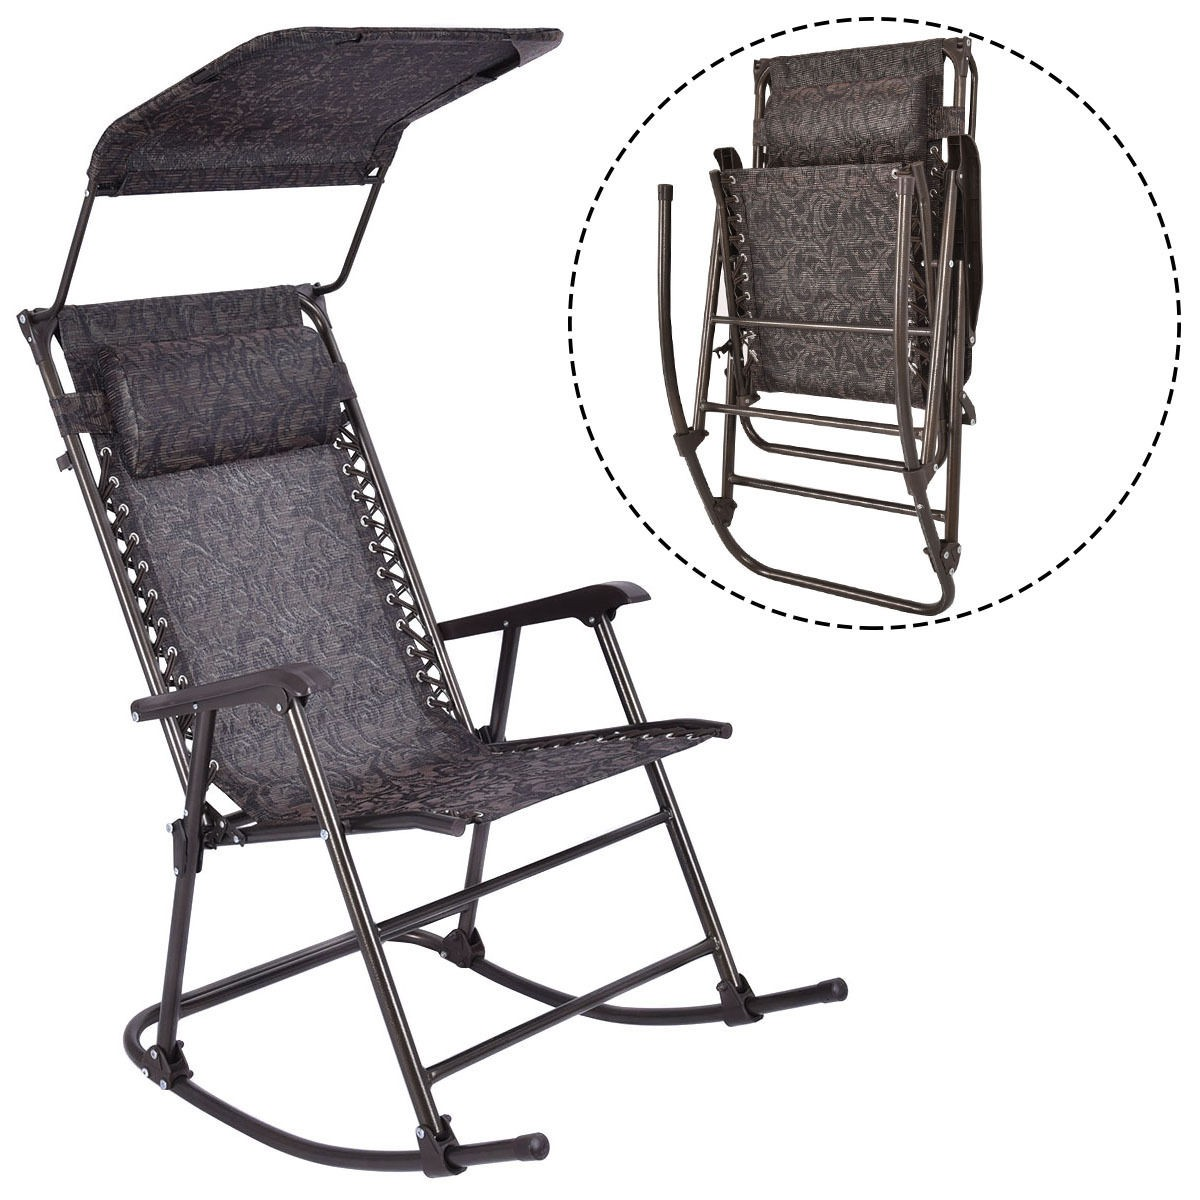 Camping Chairs With Canopy Outdoor Home Daddy Folding Rocking Chair Rocker Patio